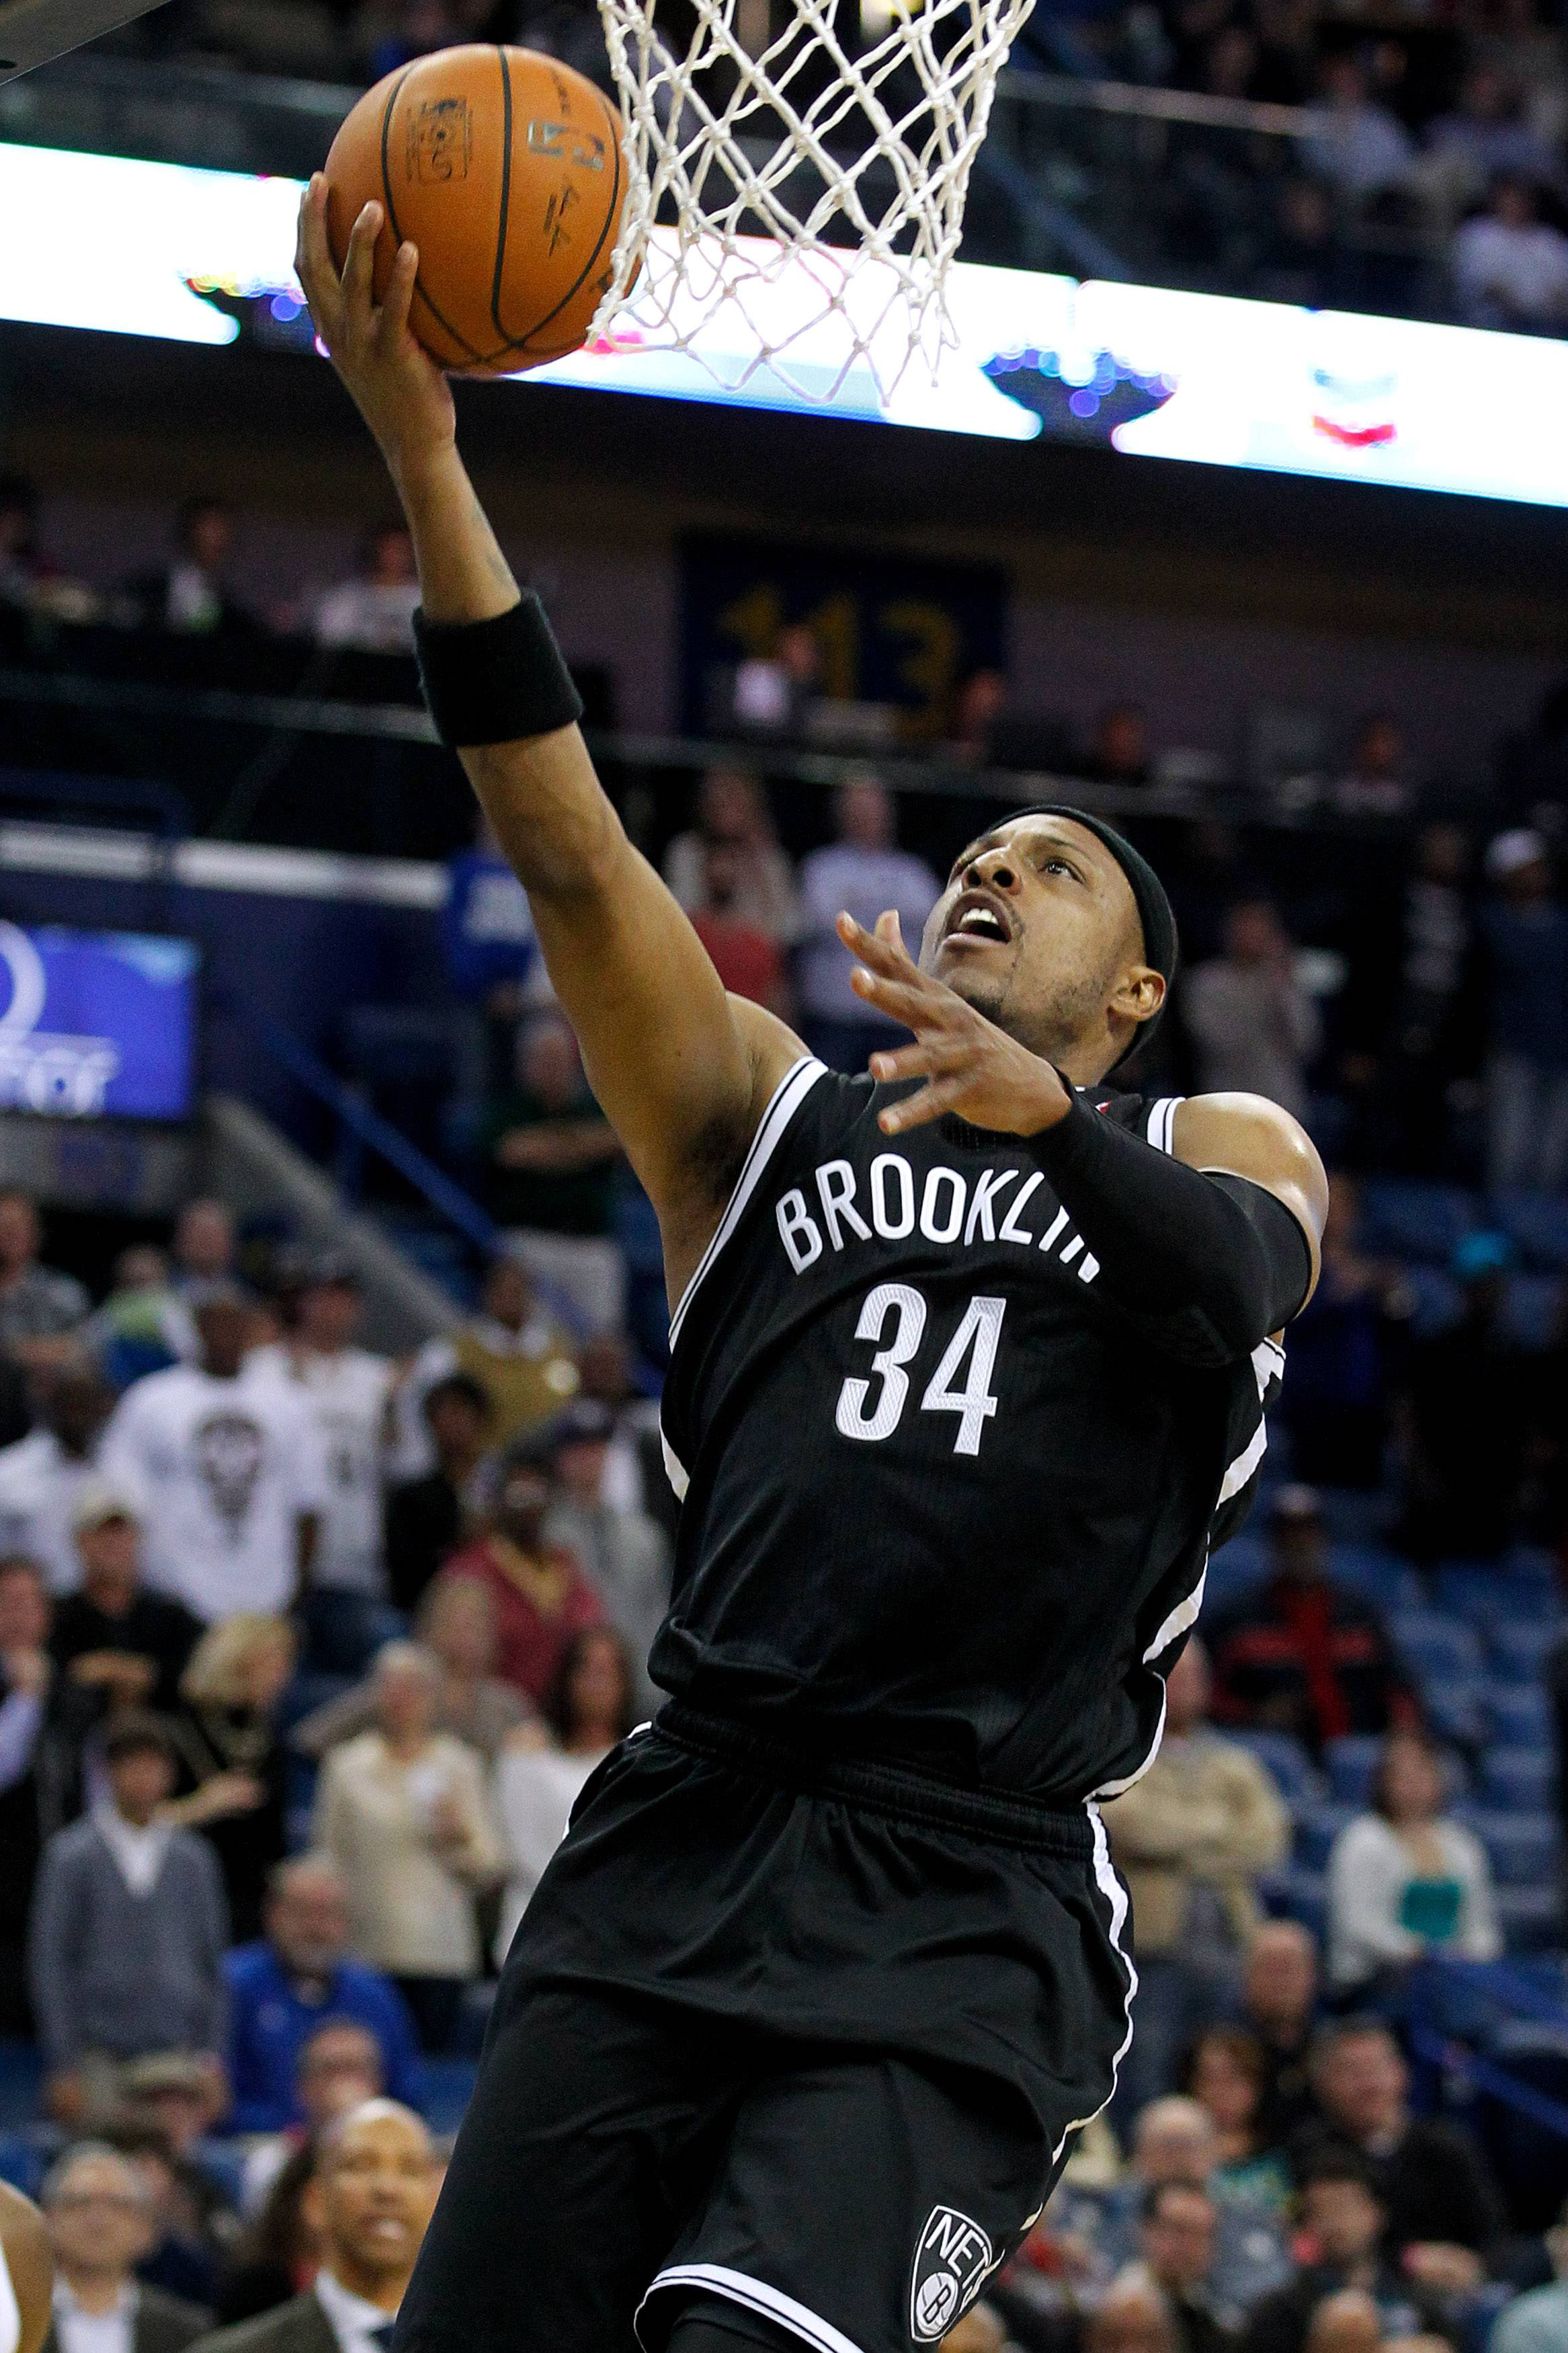 Brooklyn Nets forward Paul Pierce (34) shoots the ball during overtime of an NBA basketball game against the New Orleans Pelicans in New Orleans, Monday, March 24, 2014. The Pelicans won 109-104.